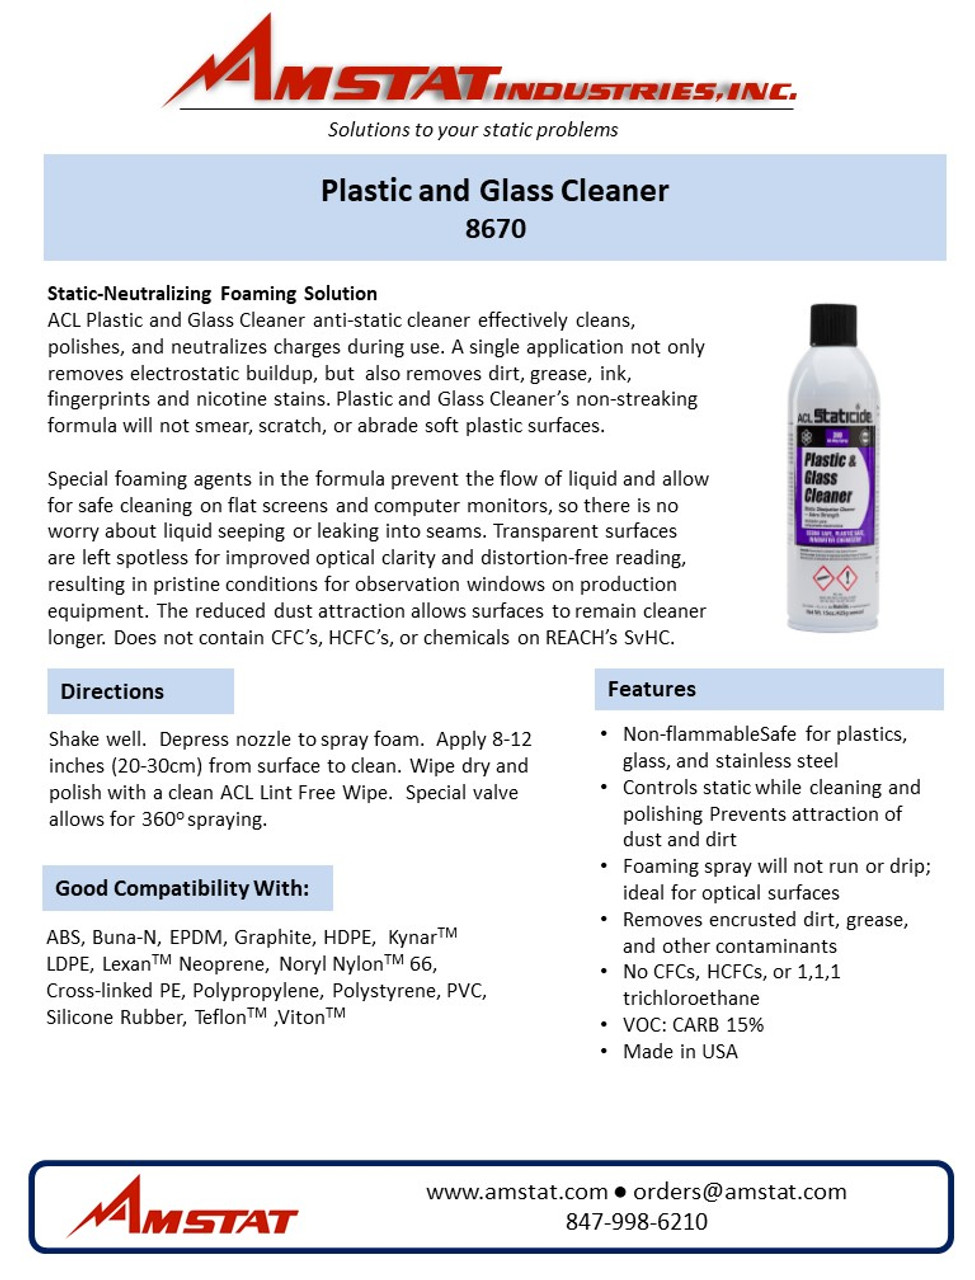 Plastic and Glass Cleaner